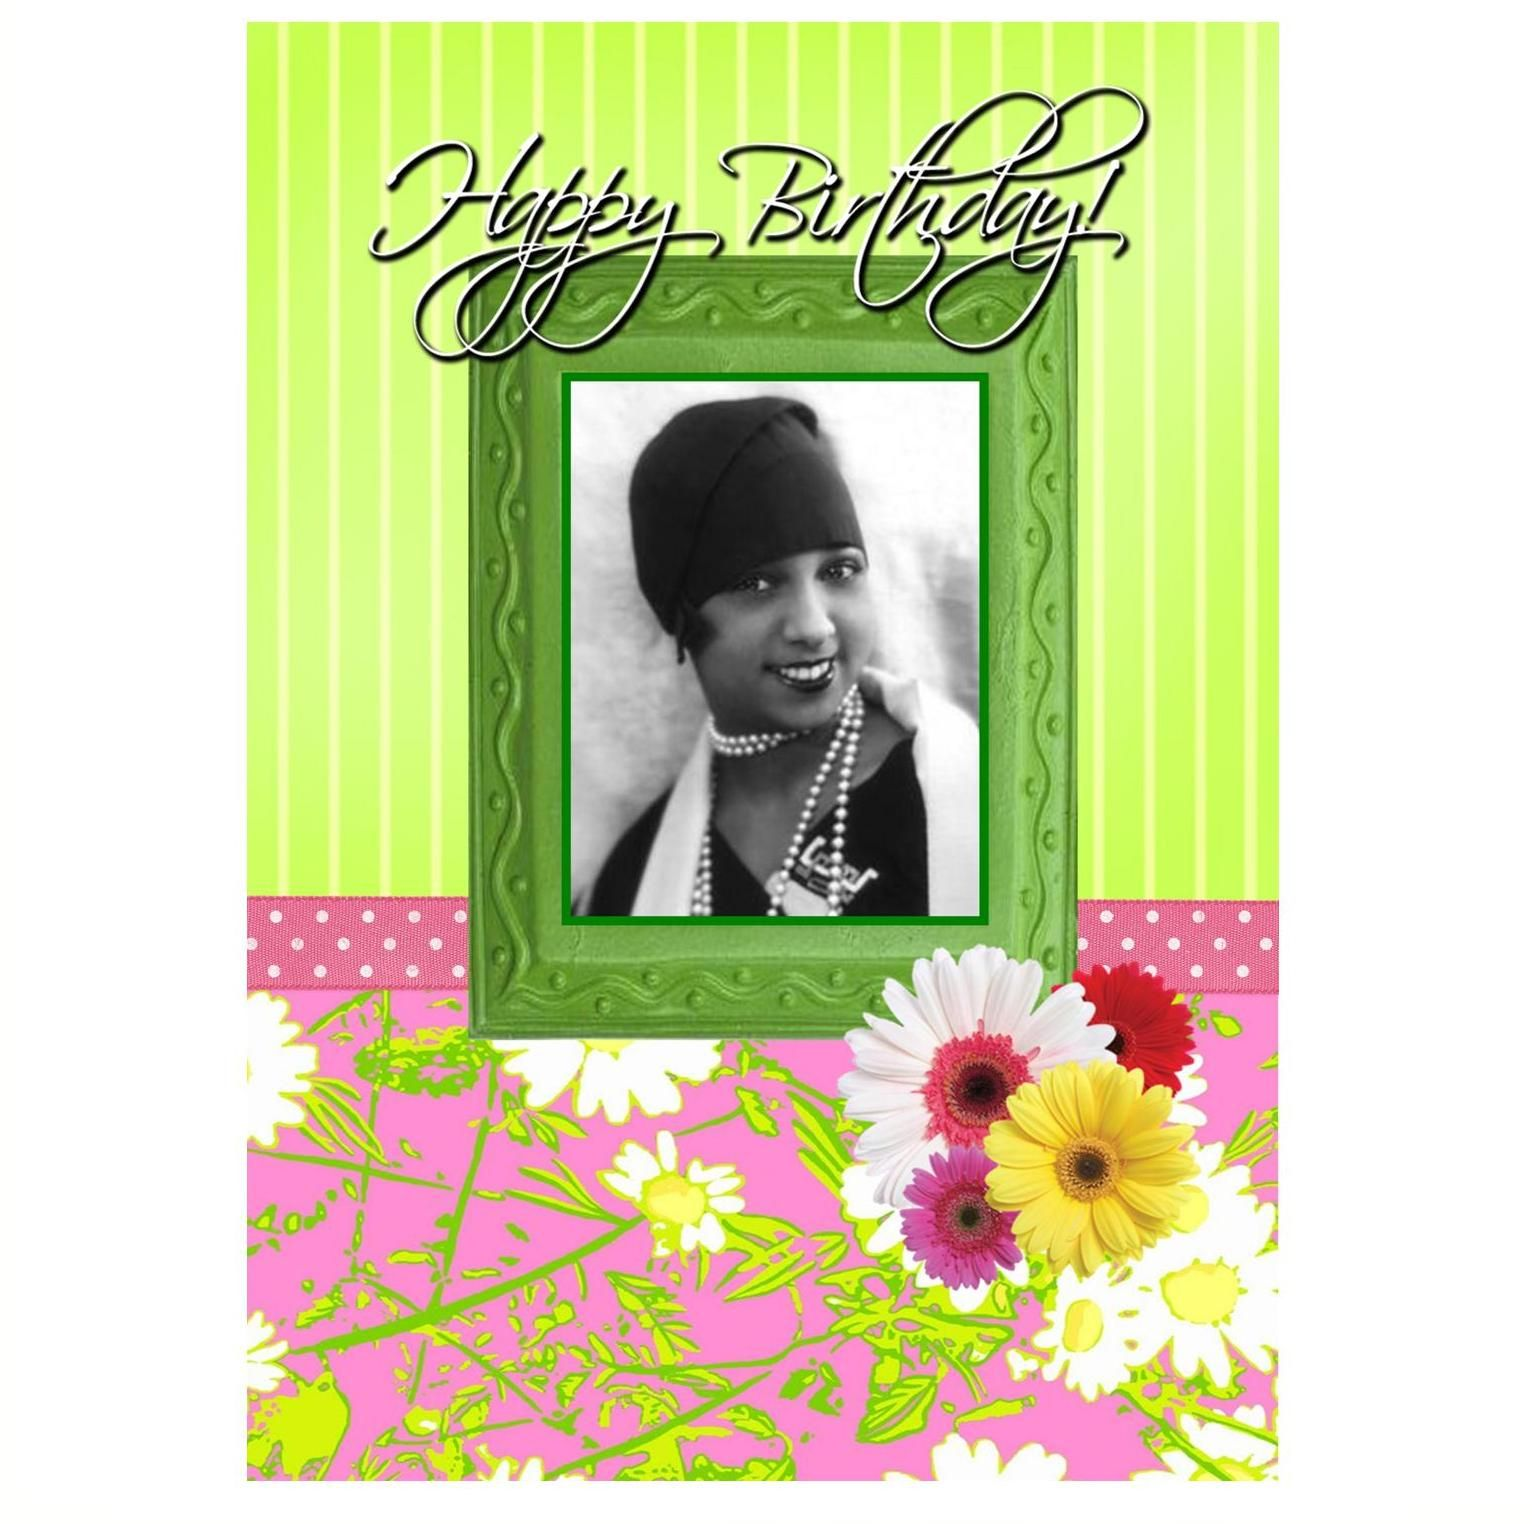 Happy birthday card birthday woman black woman josephine baker quality black people greeting cards for all occasions celebrating black british african caribbean african american and dual heritage people kristyandbryce Image collections